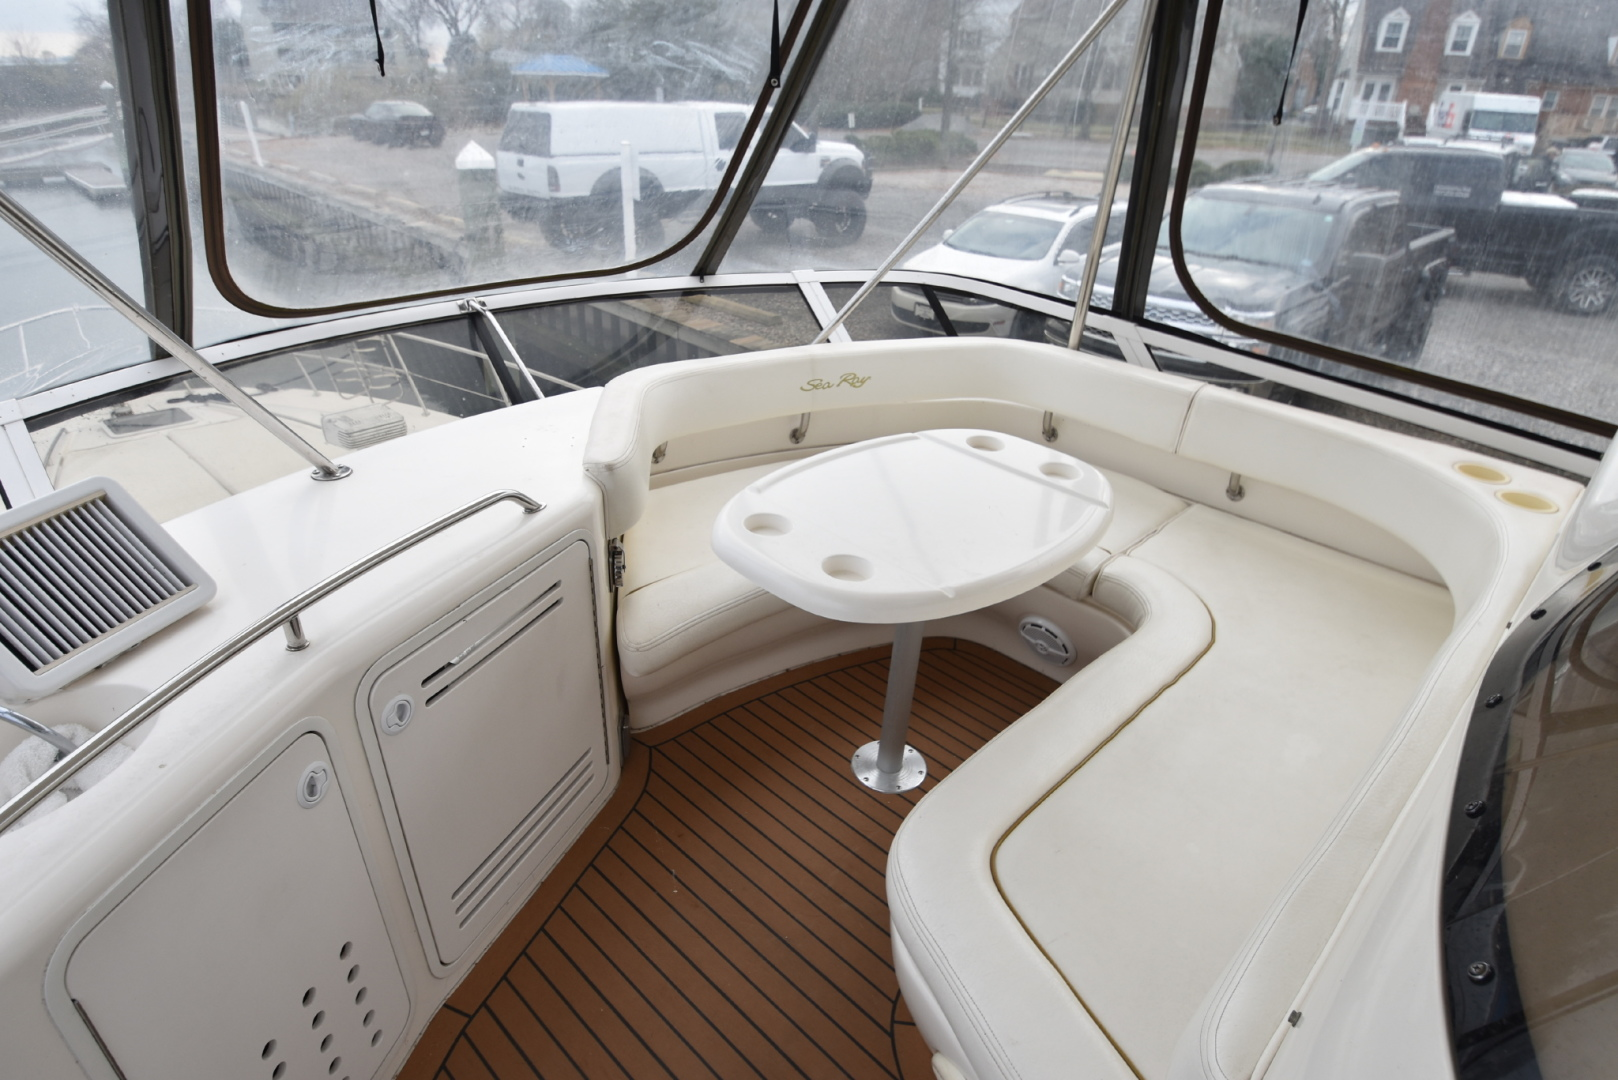 50 ft. Sea Ray – Luxury Power Yacht - front Bridge table - round seats